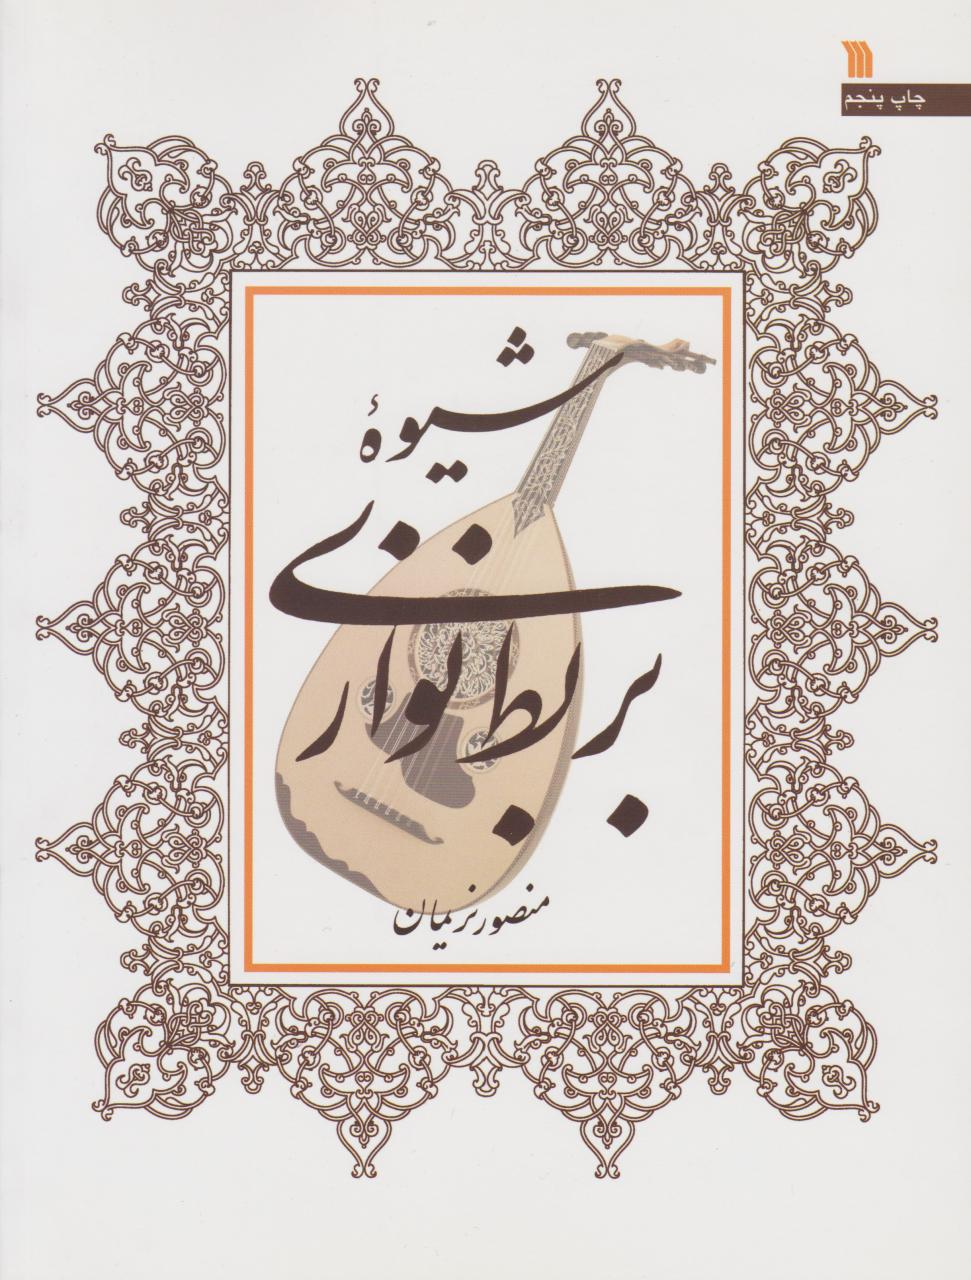 Barbat (Oud) Method by Mansour Nariman